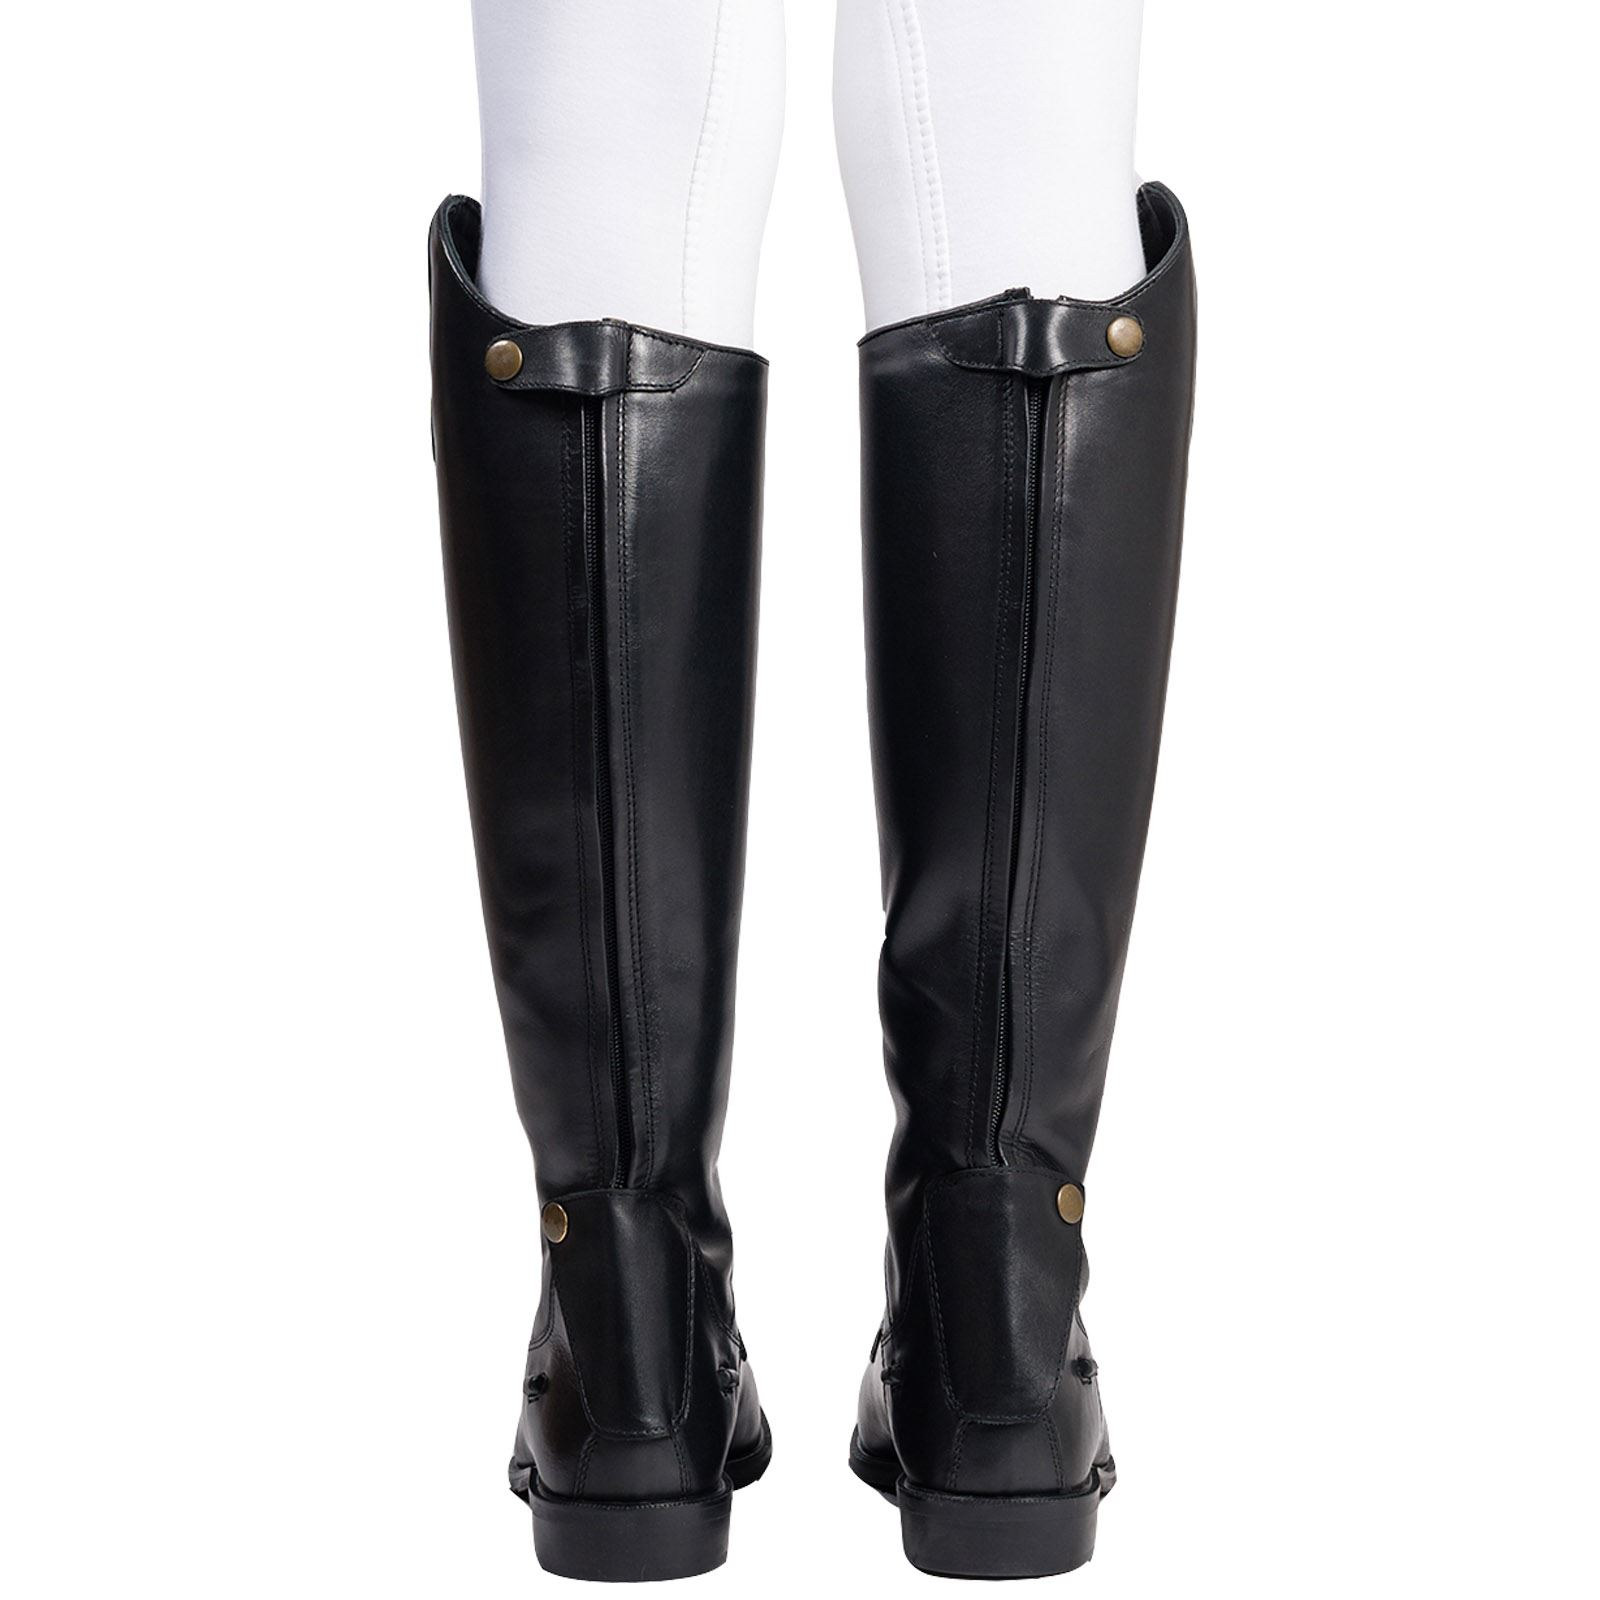 Ba belmont boots ladies tall horse riding competition equestrian upper material solutioingenieria Choice Image